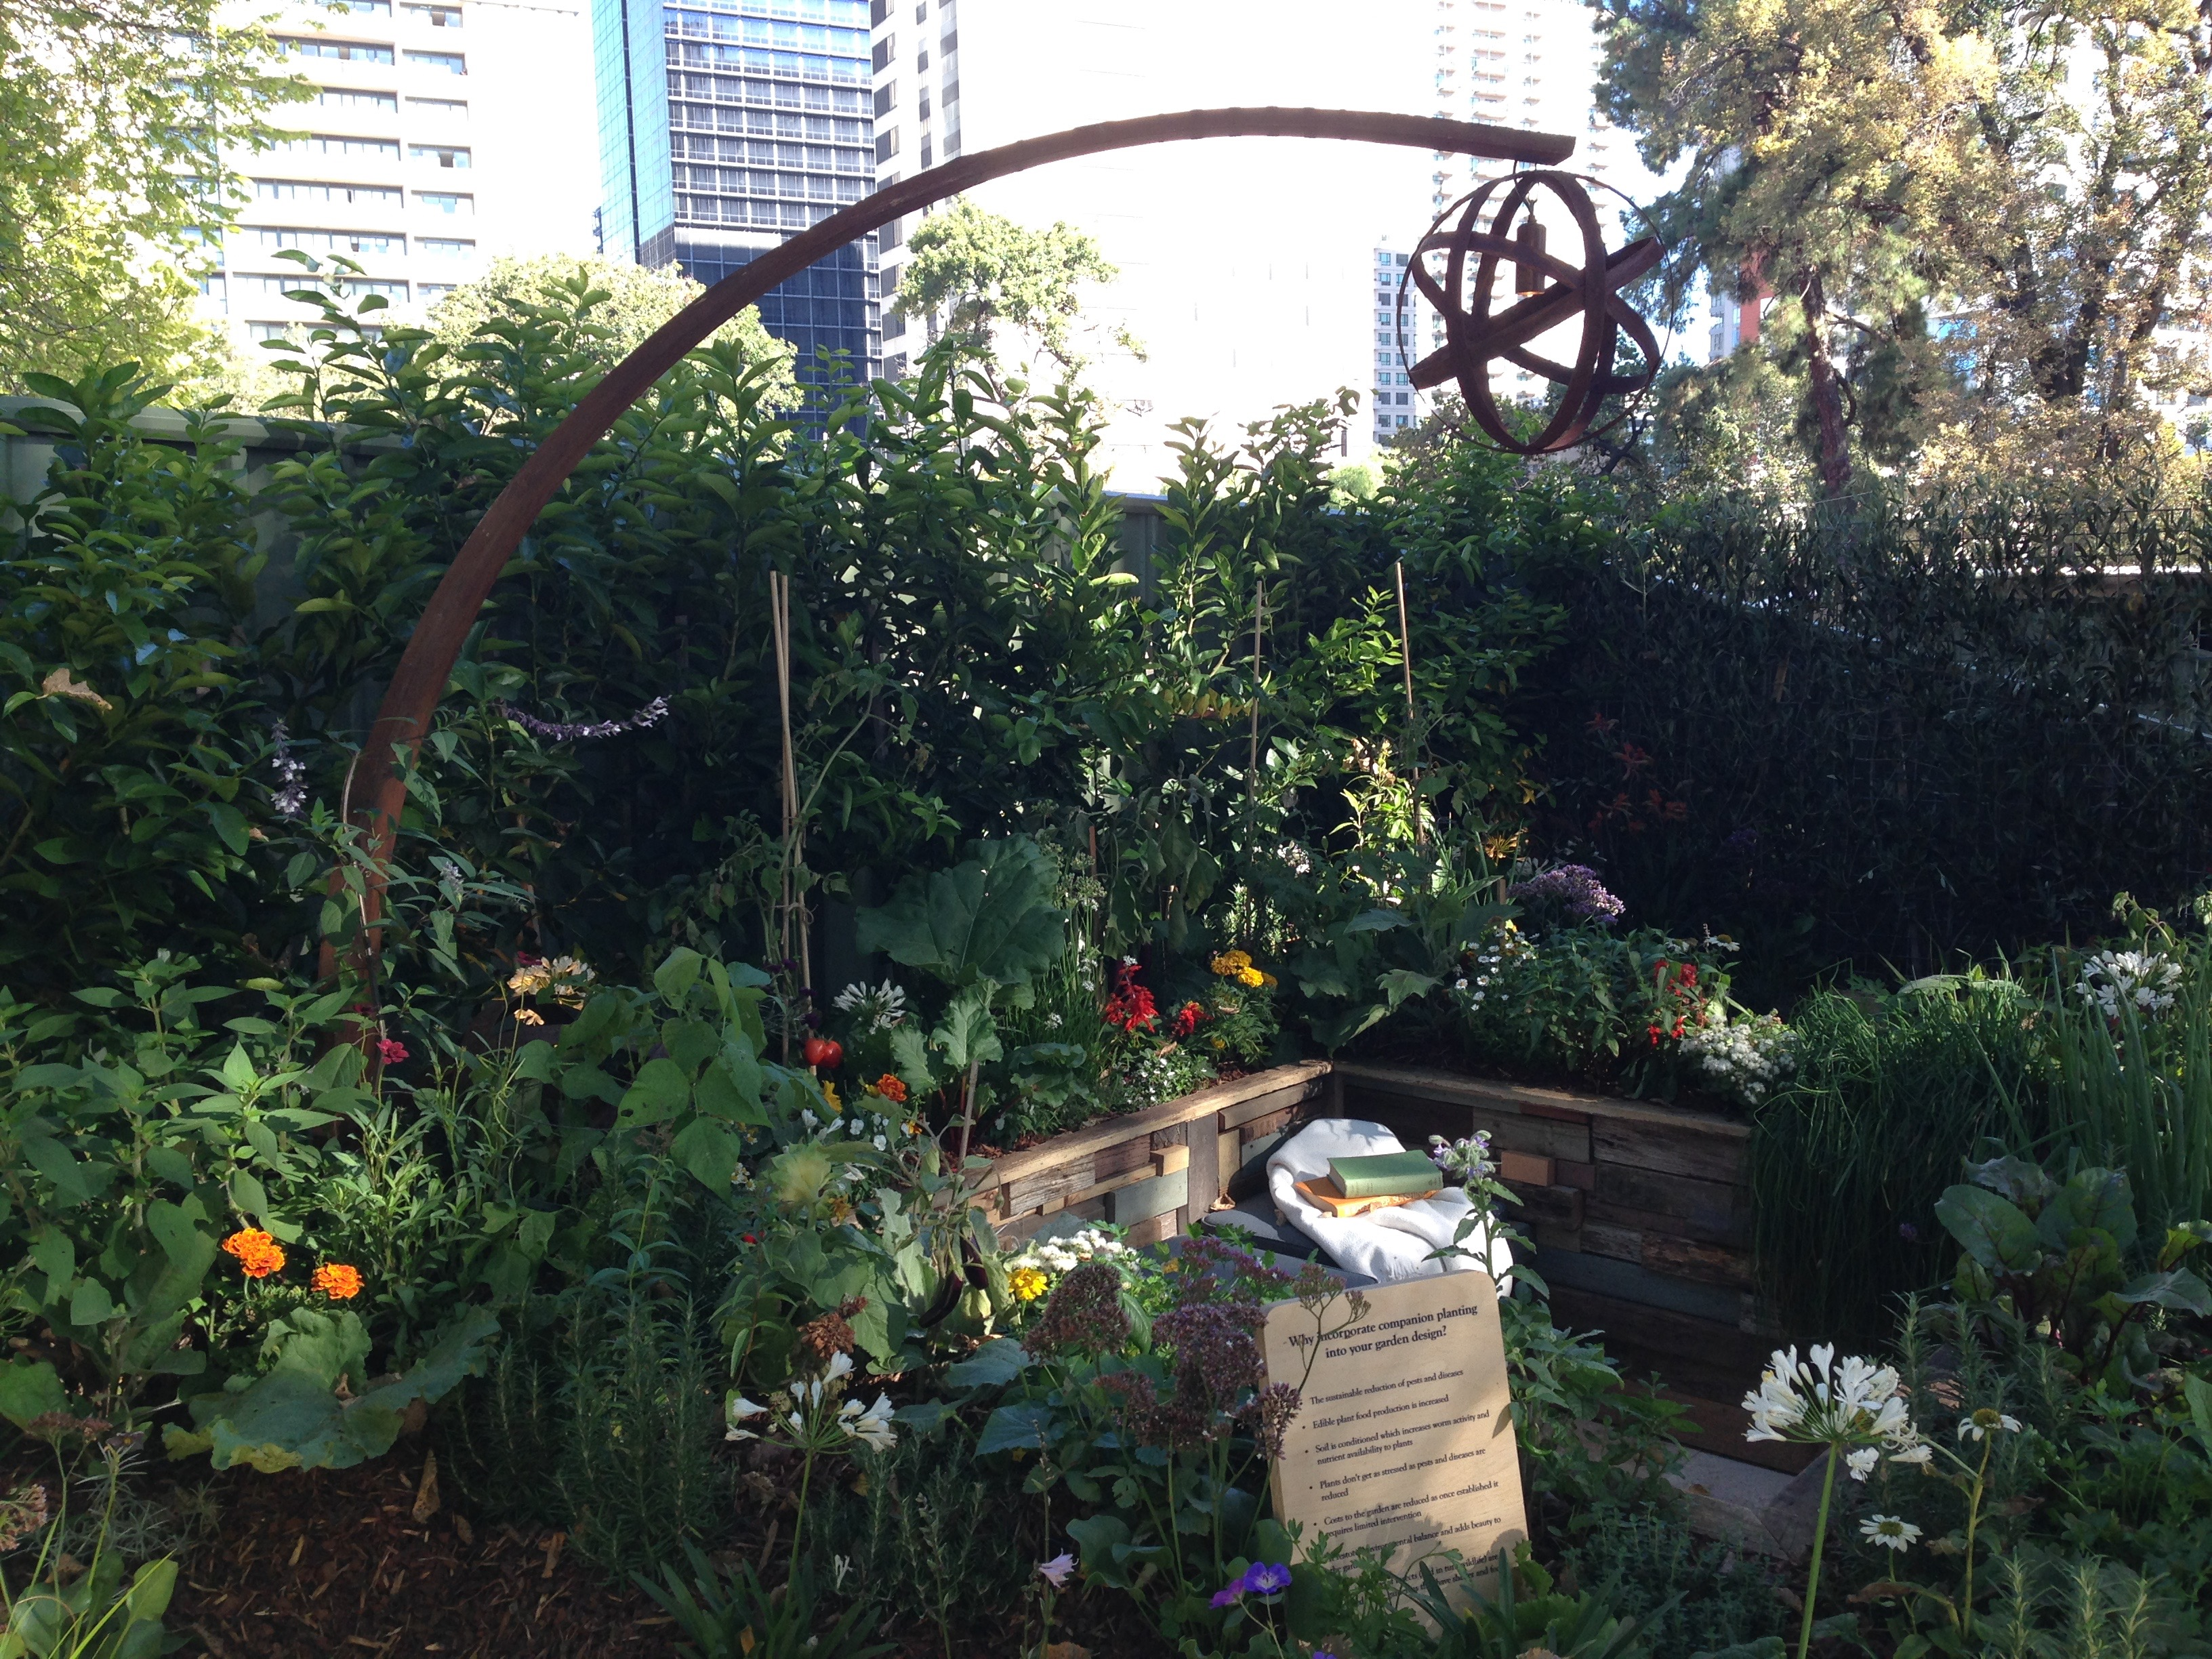 urban oasis achievable garden by veronica bosque janna schreier